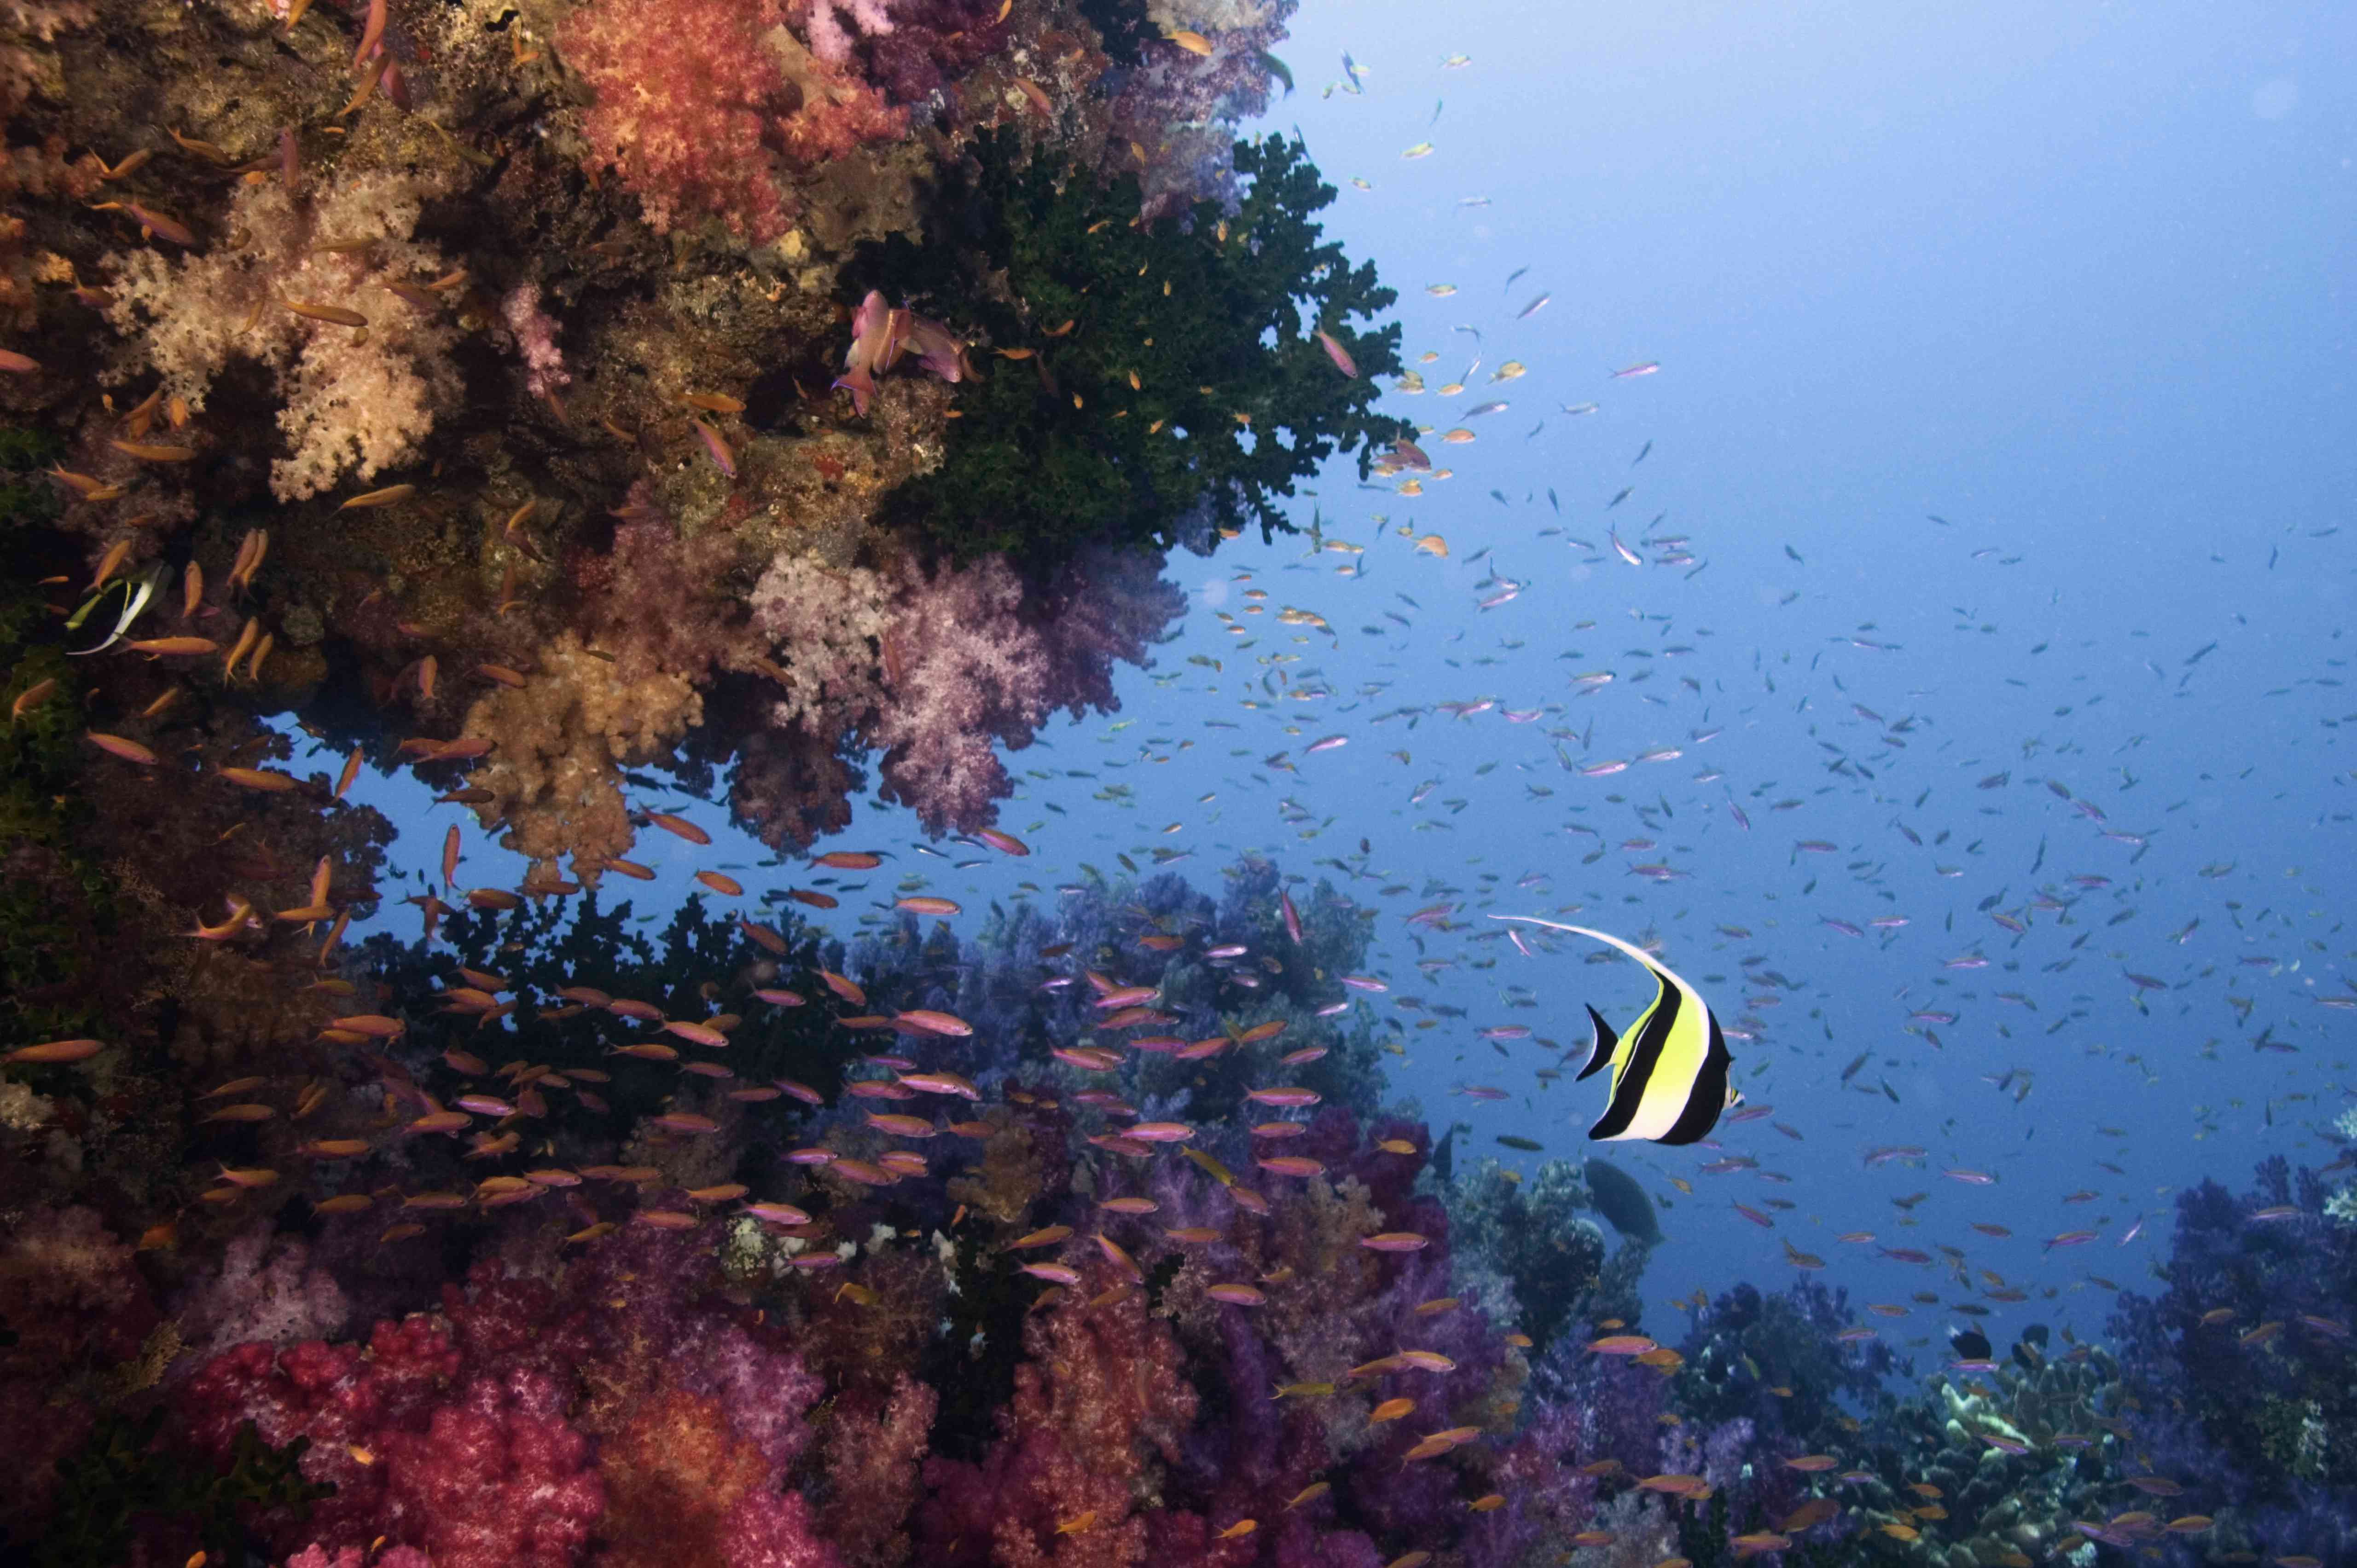 Colorful purple coral and a yellow fish